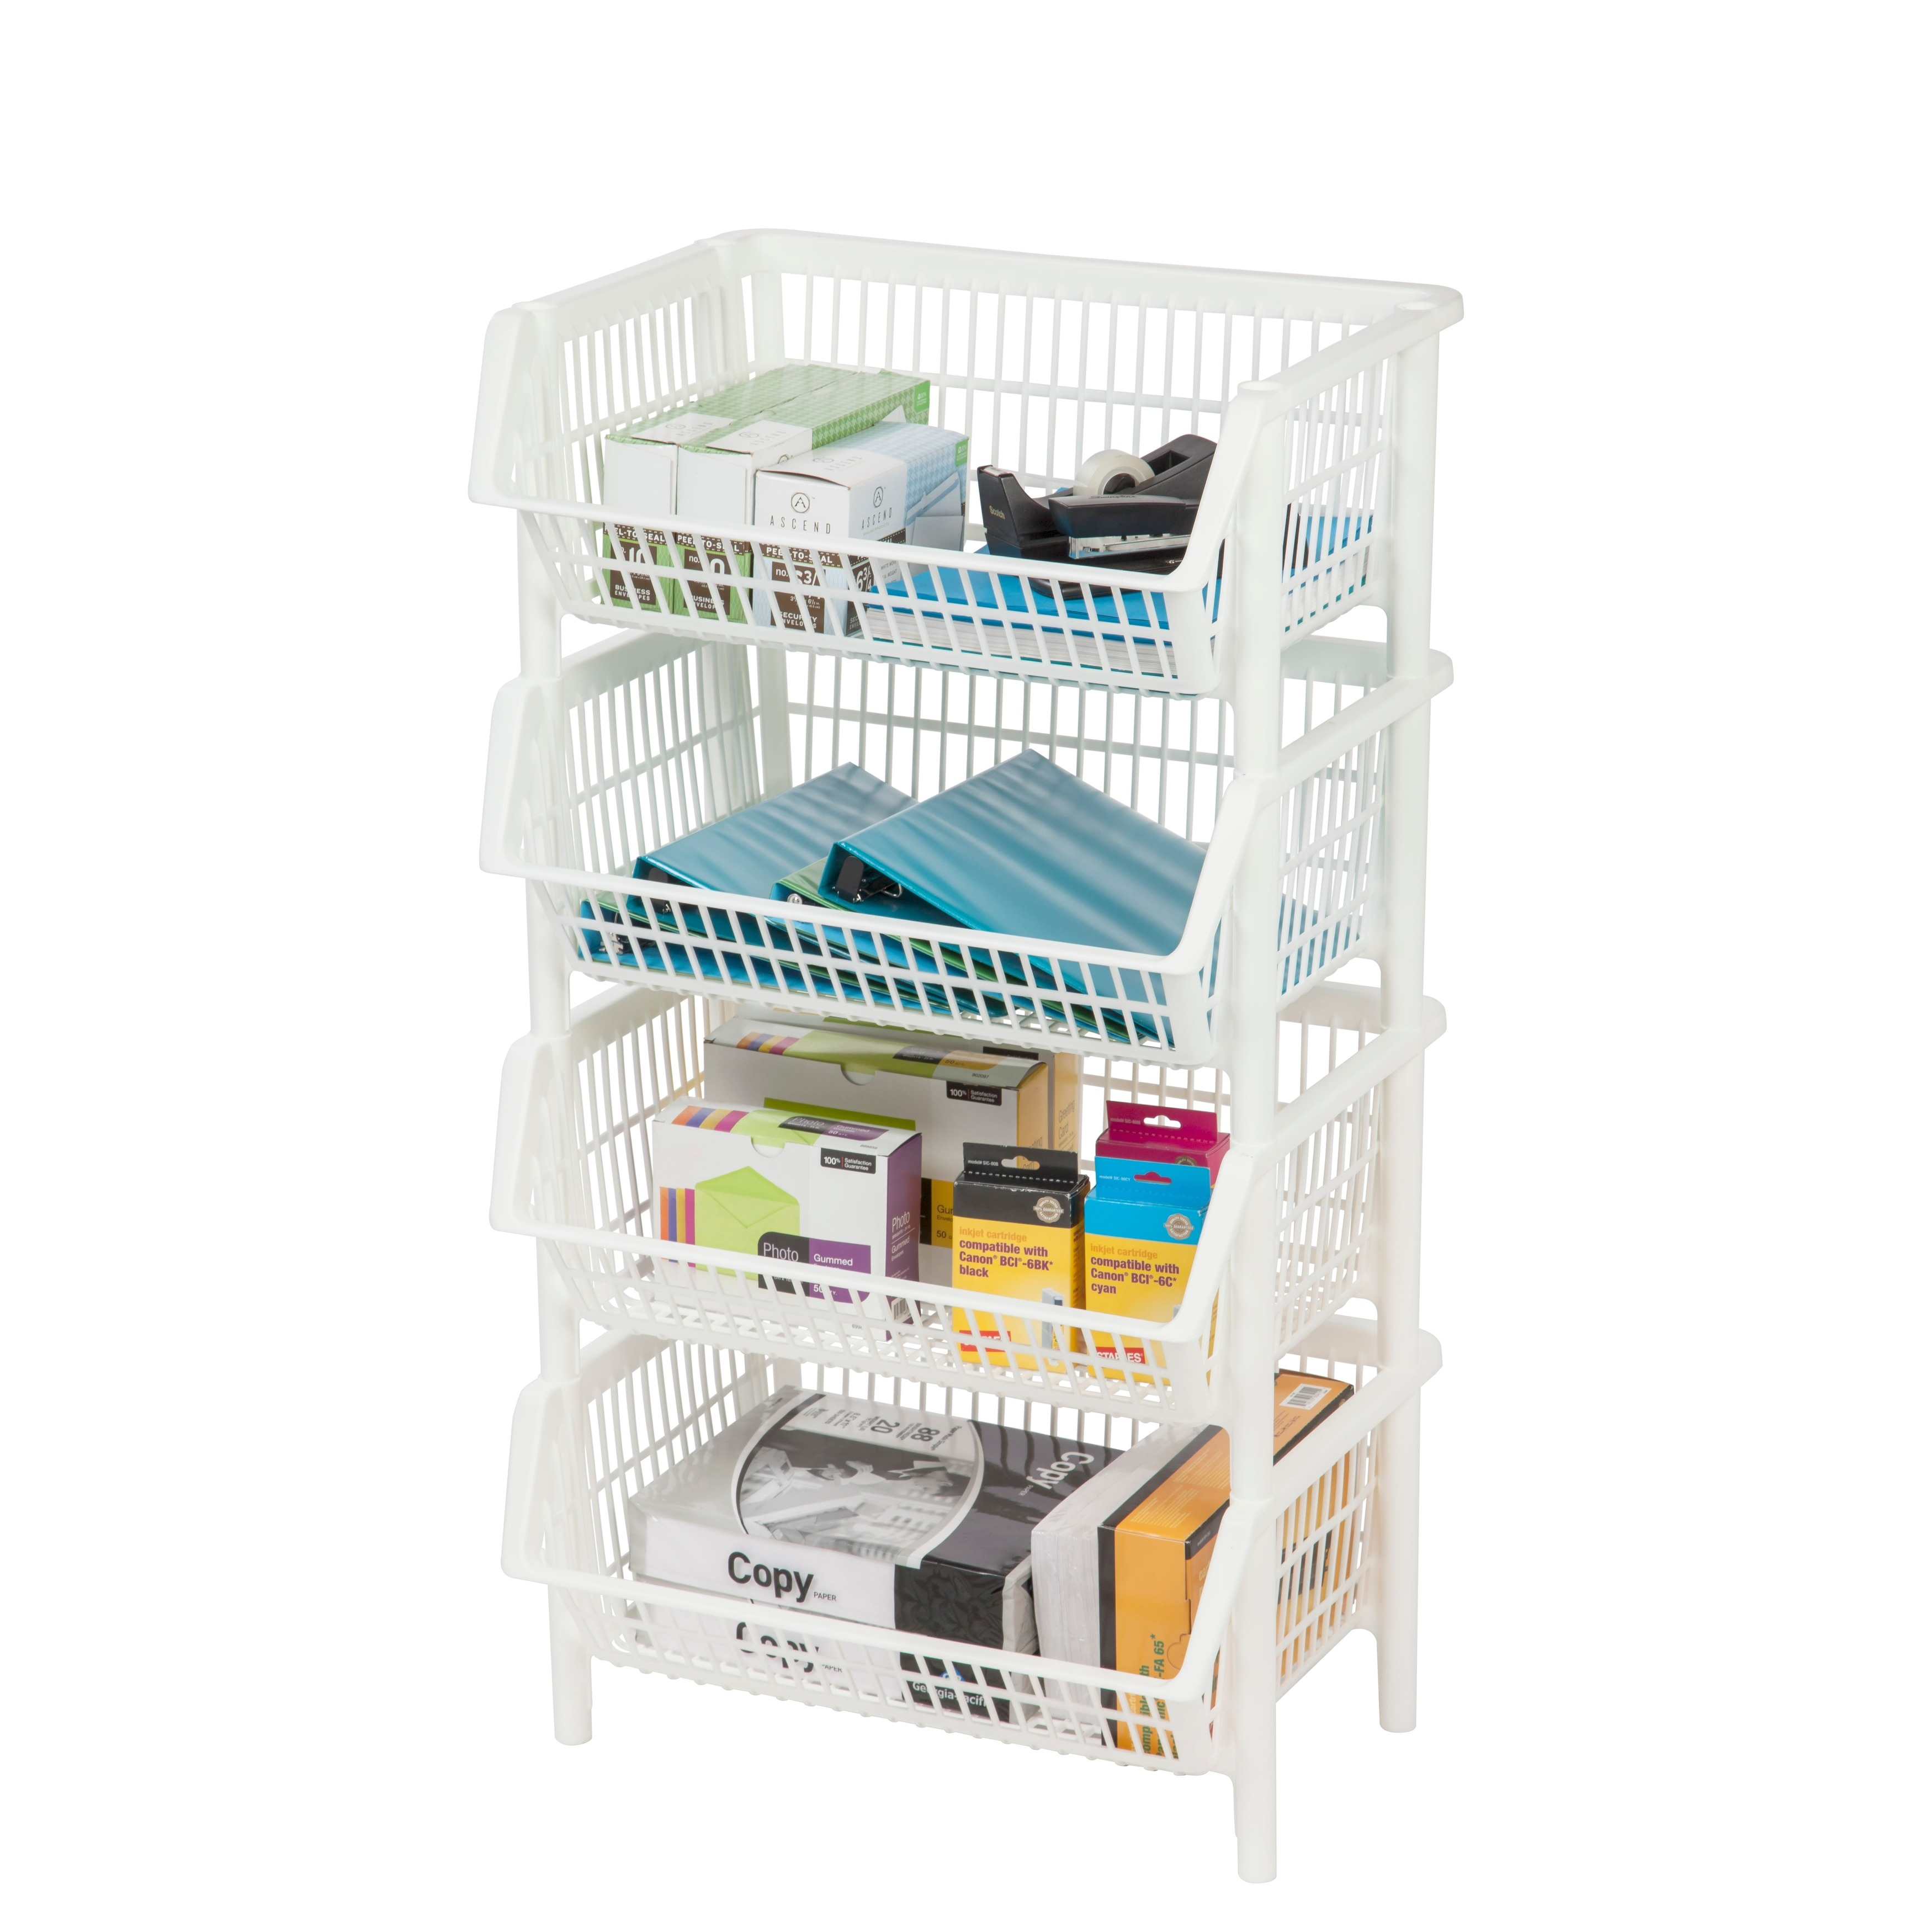 Shop IRIS White Jumbo Stacking Basket (Pack of 4) - Free Shipping On Orders Over $45 - Overstock.com - 17097280  sc 1 st  Overstock.com & Shop IRIS White Jumbo Stacking Basket (Pack of 4) - Free Shipping On ...